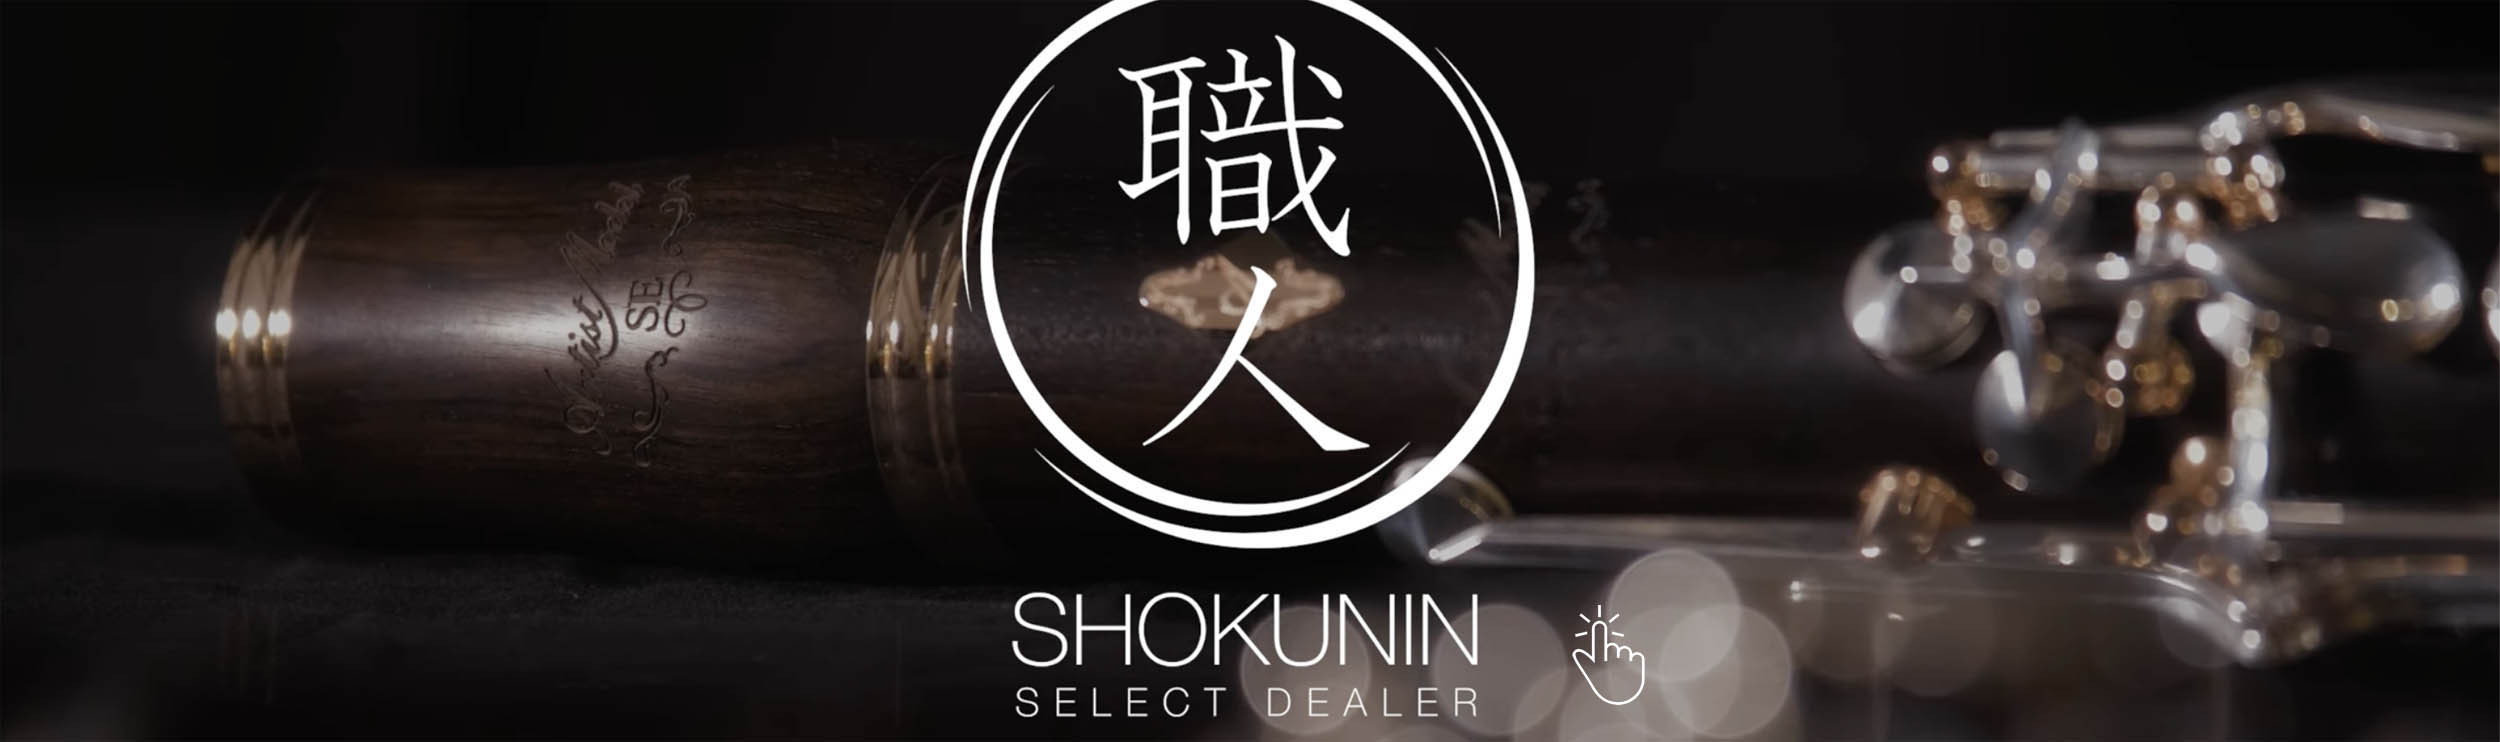 Ozwinds are Shokunin Select Dealers